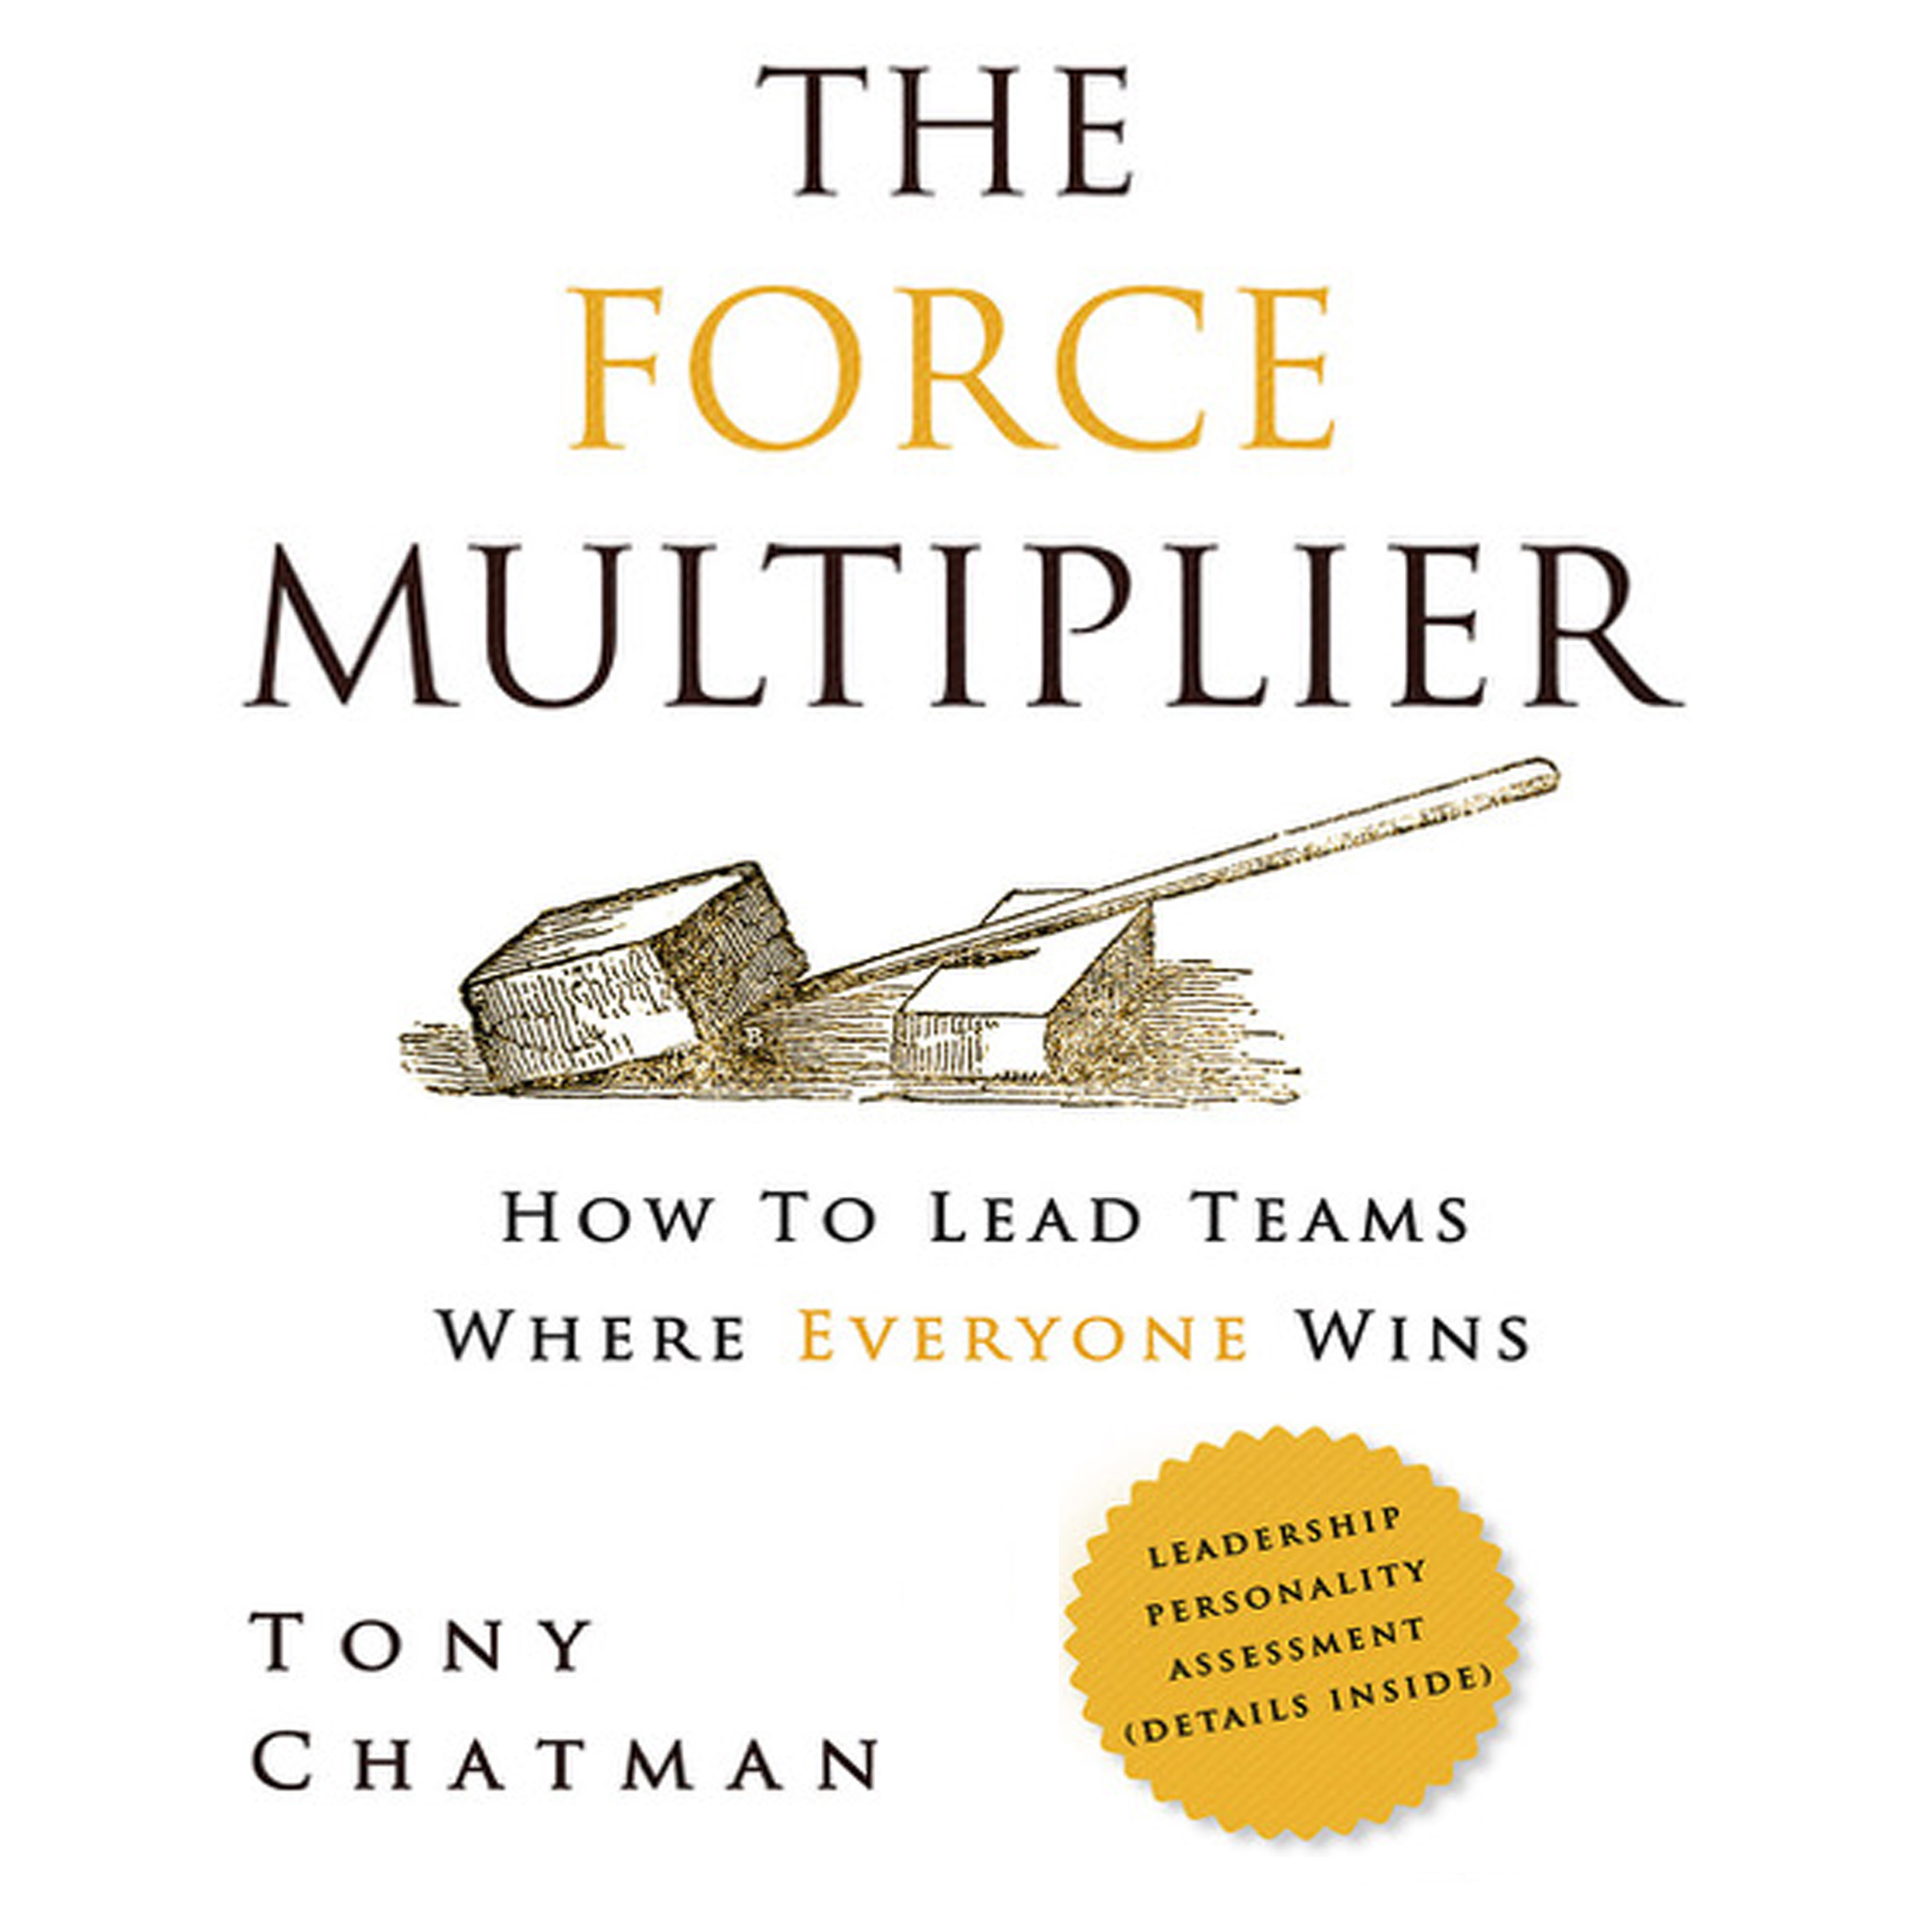 The Force Multiplier cover image